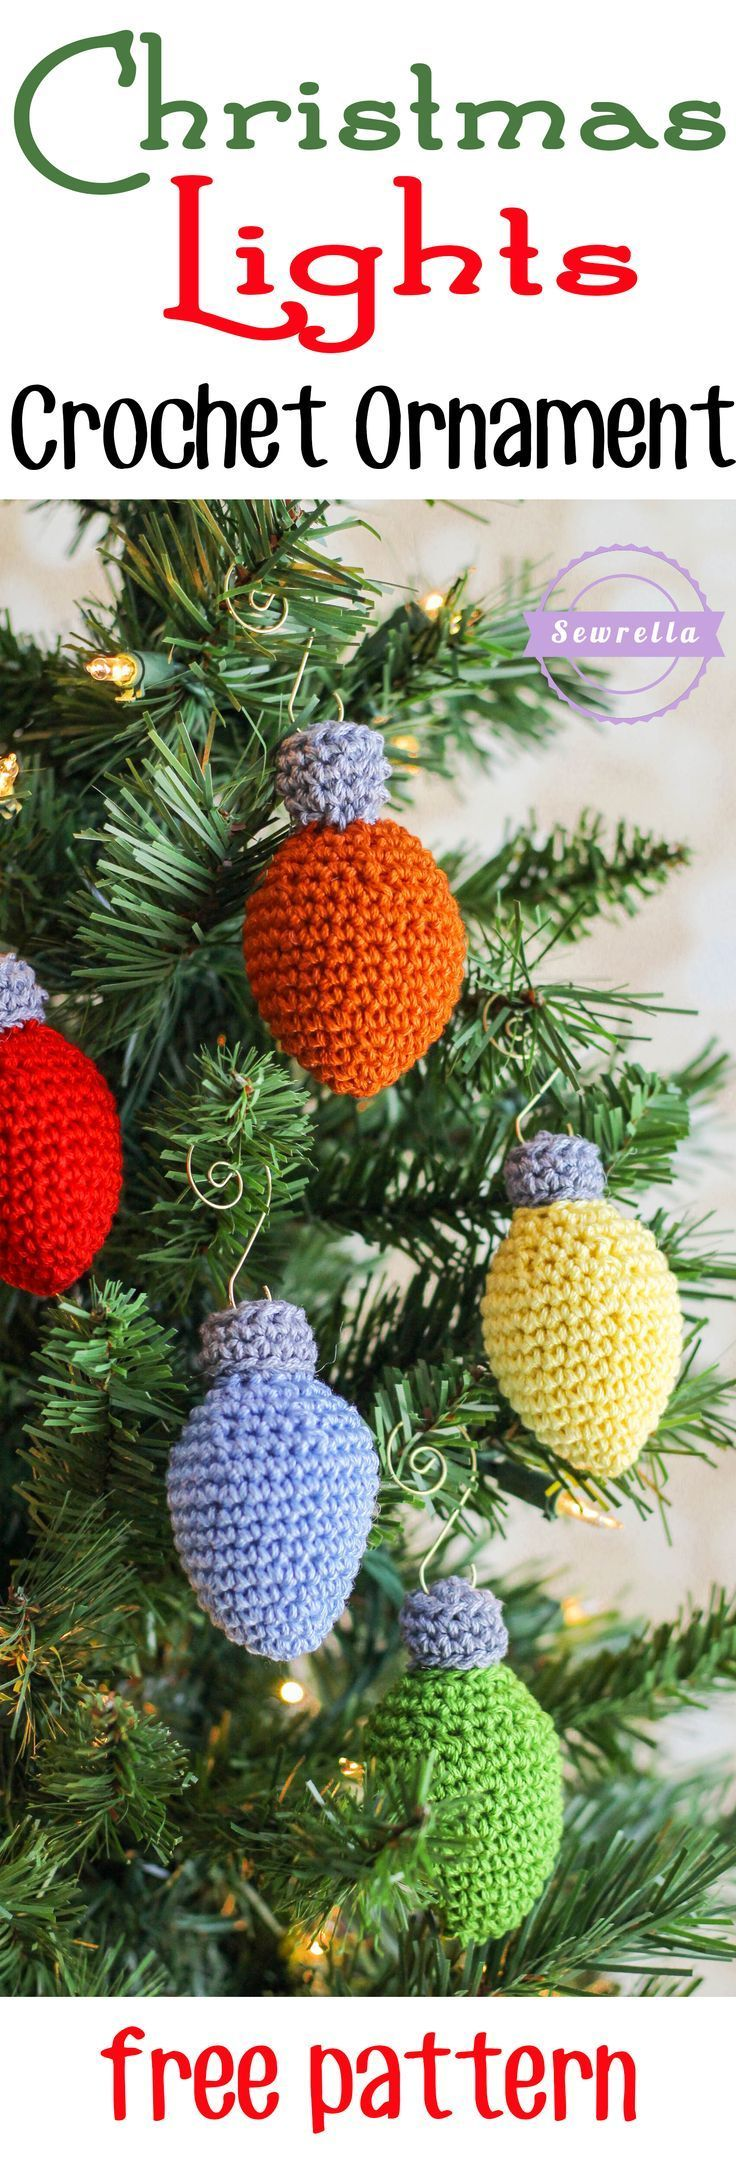 Christmas Lights Crochet Ornament   25 Days of Christmas Traditions Crochet-a-Long   Free Pattern from Sewrella